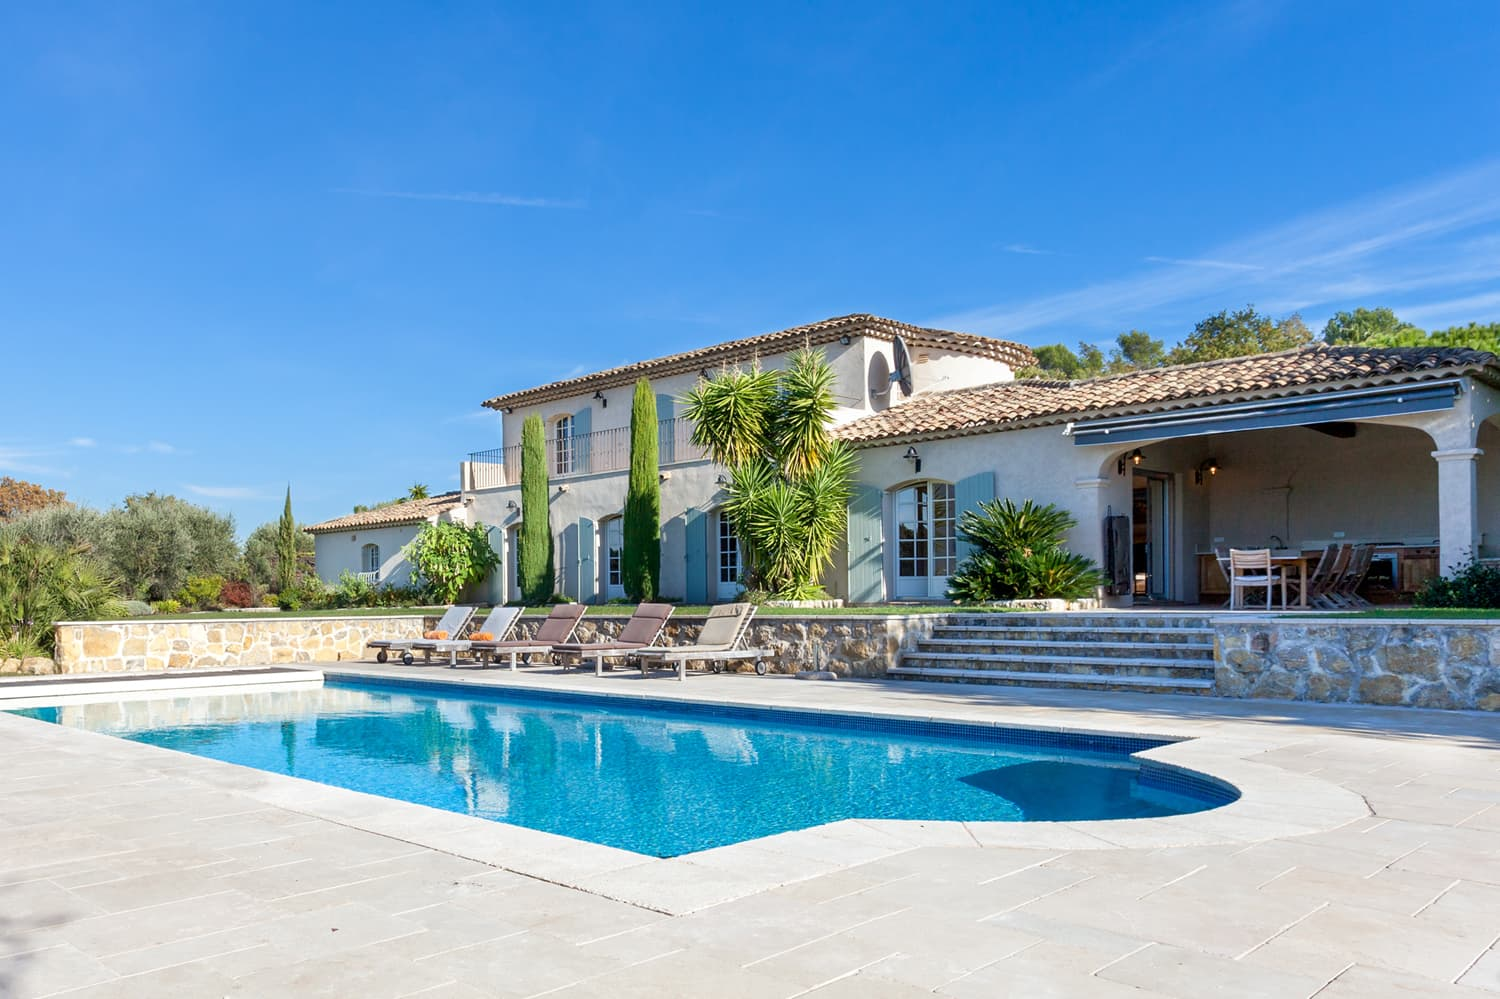 Vacation villa in Provence, Côte d'Azur with private swimming pool | Les Grivarelles